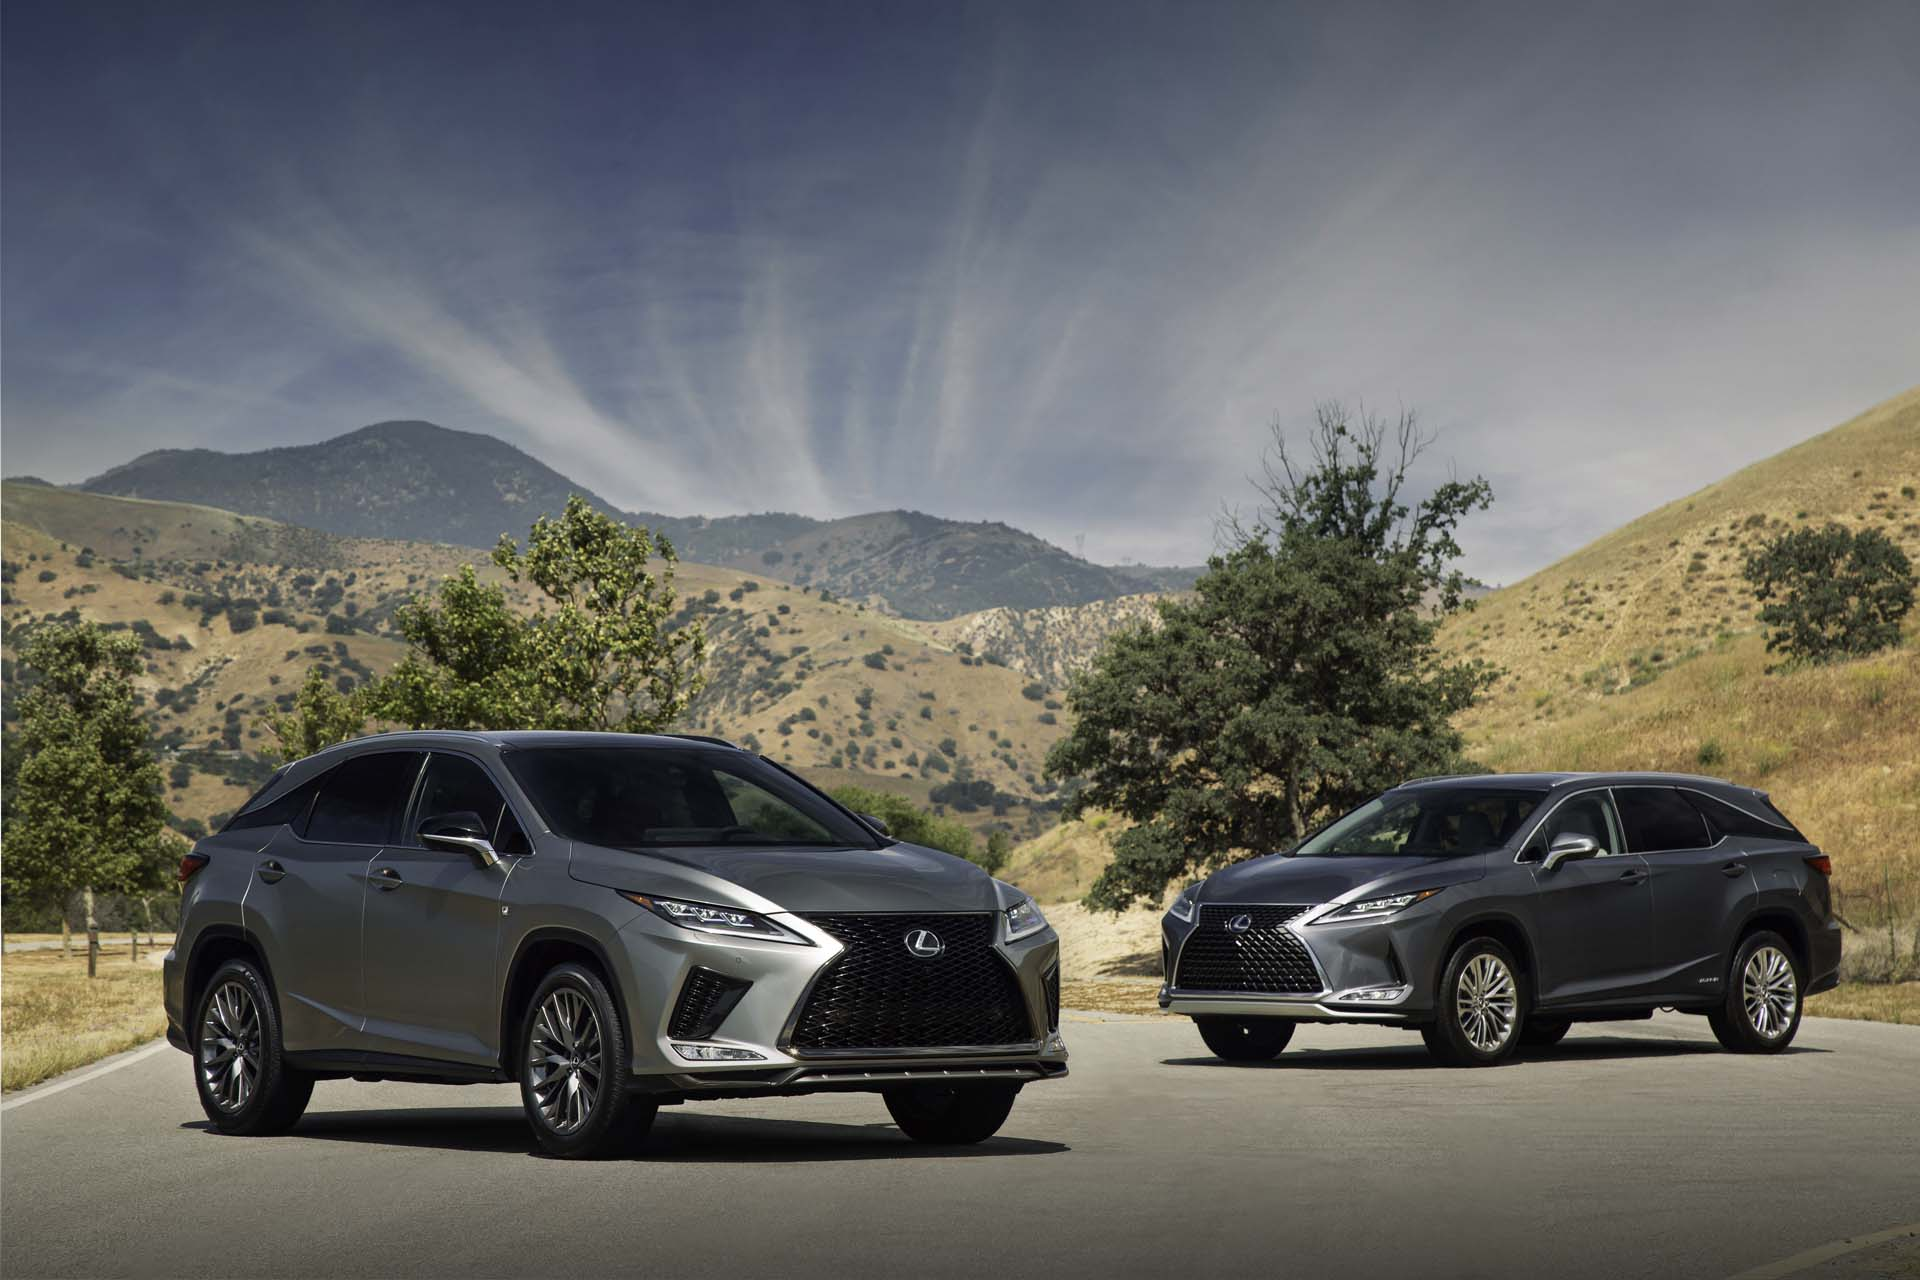 2020 Lexus Rx Adds Touchscreen Infotainment Android Auto Compatibility